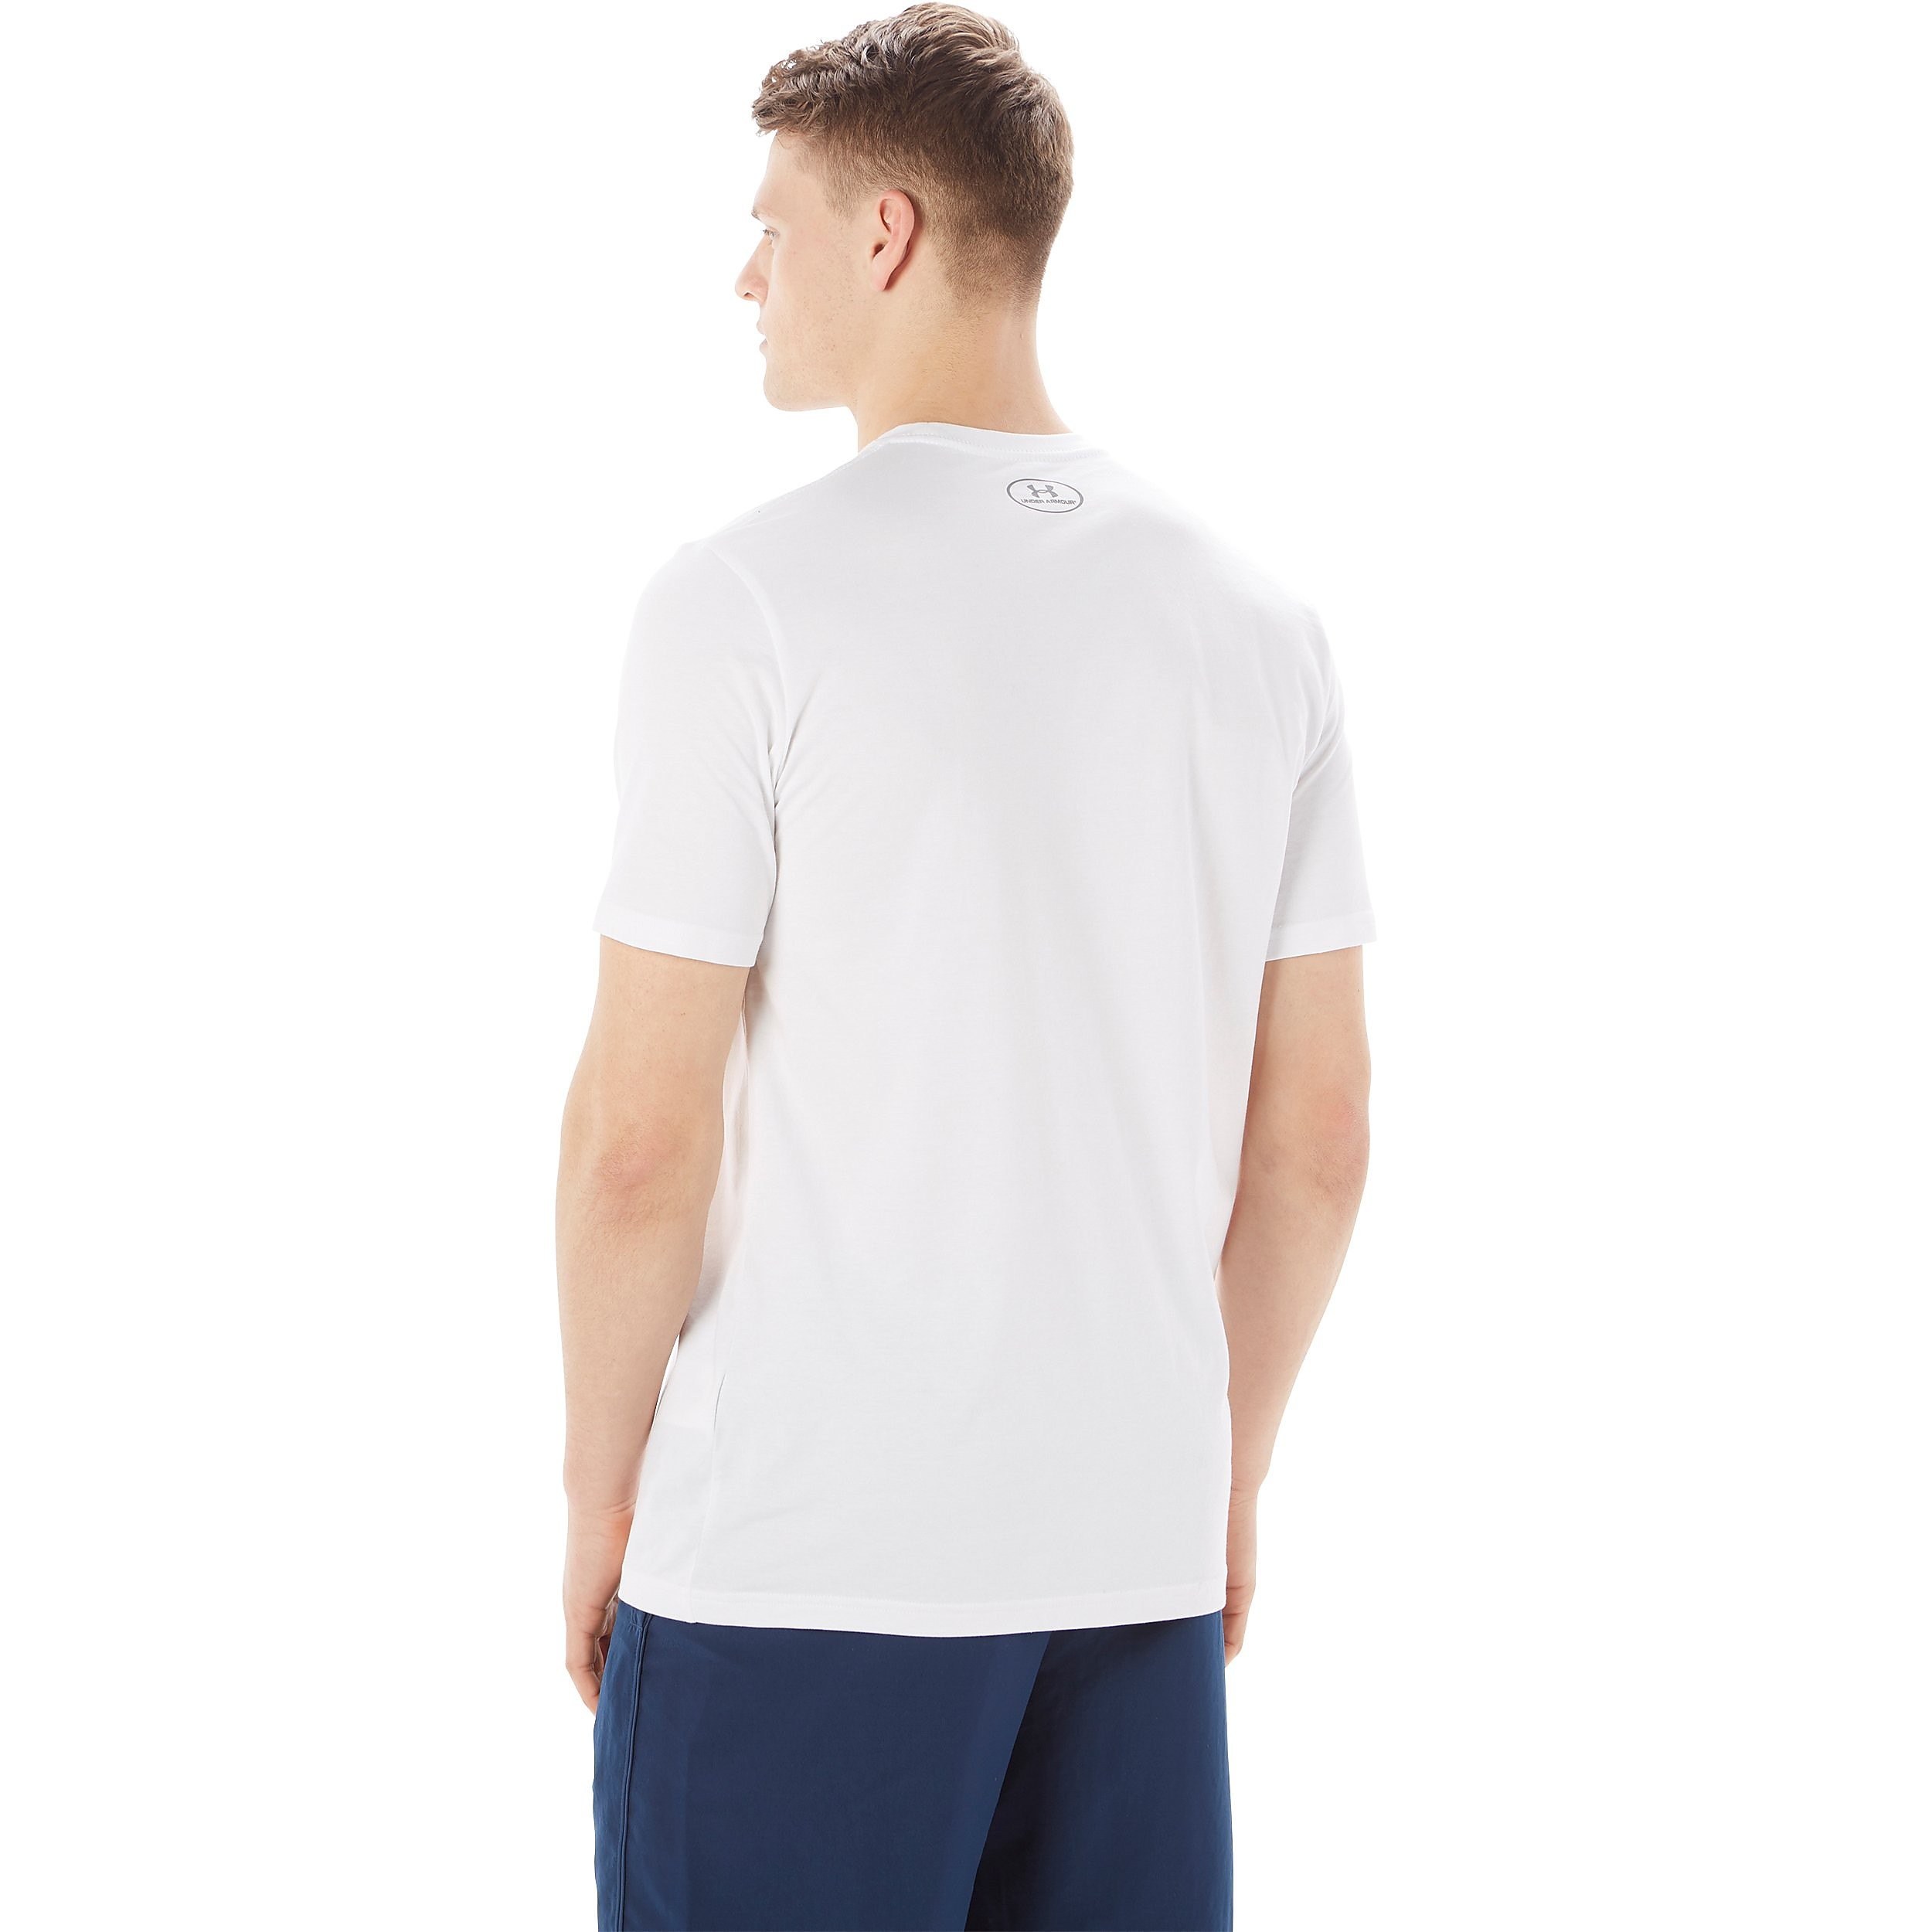 Under Armour Blocked Sportstyle Logo Men's Training T-Shirt